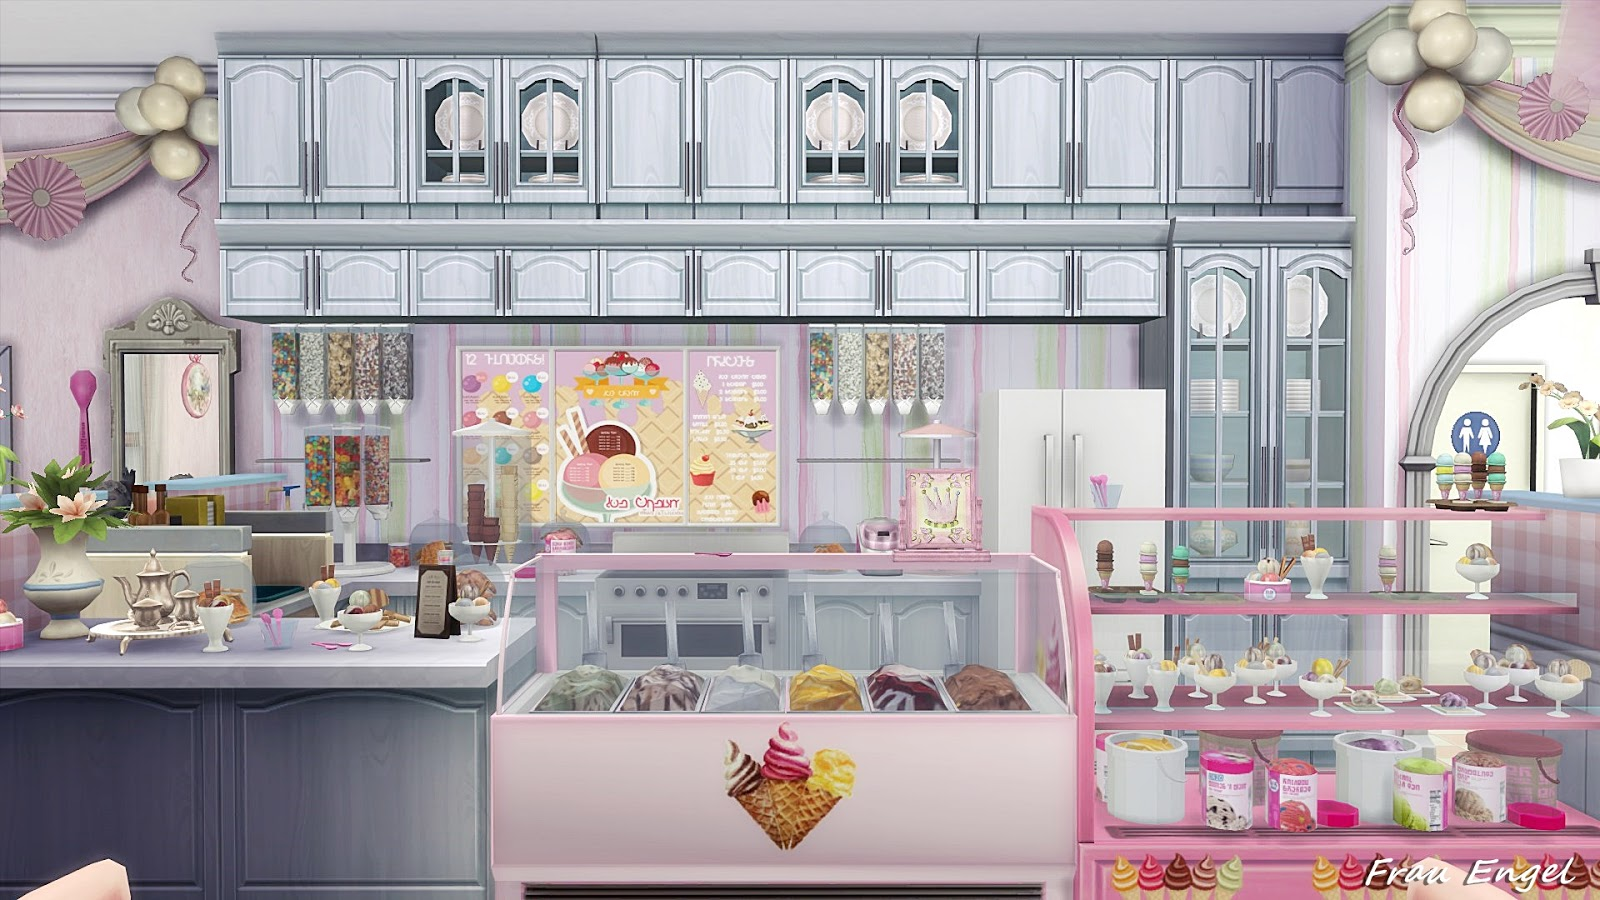 frau engel ts4 ice cream cafe. Black Bedroom Furniture Sets. Home Design Ideas